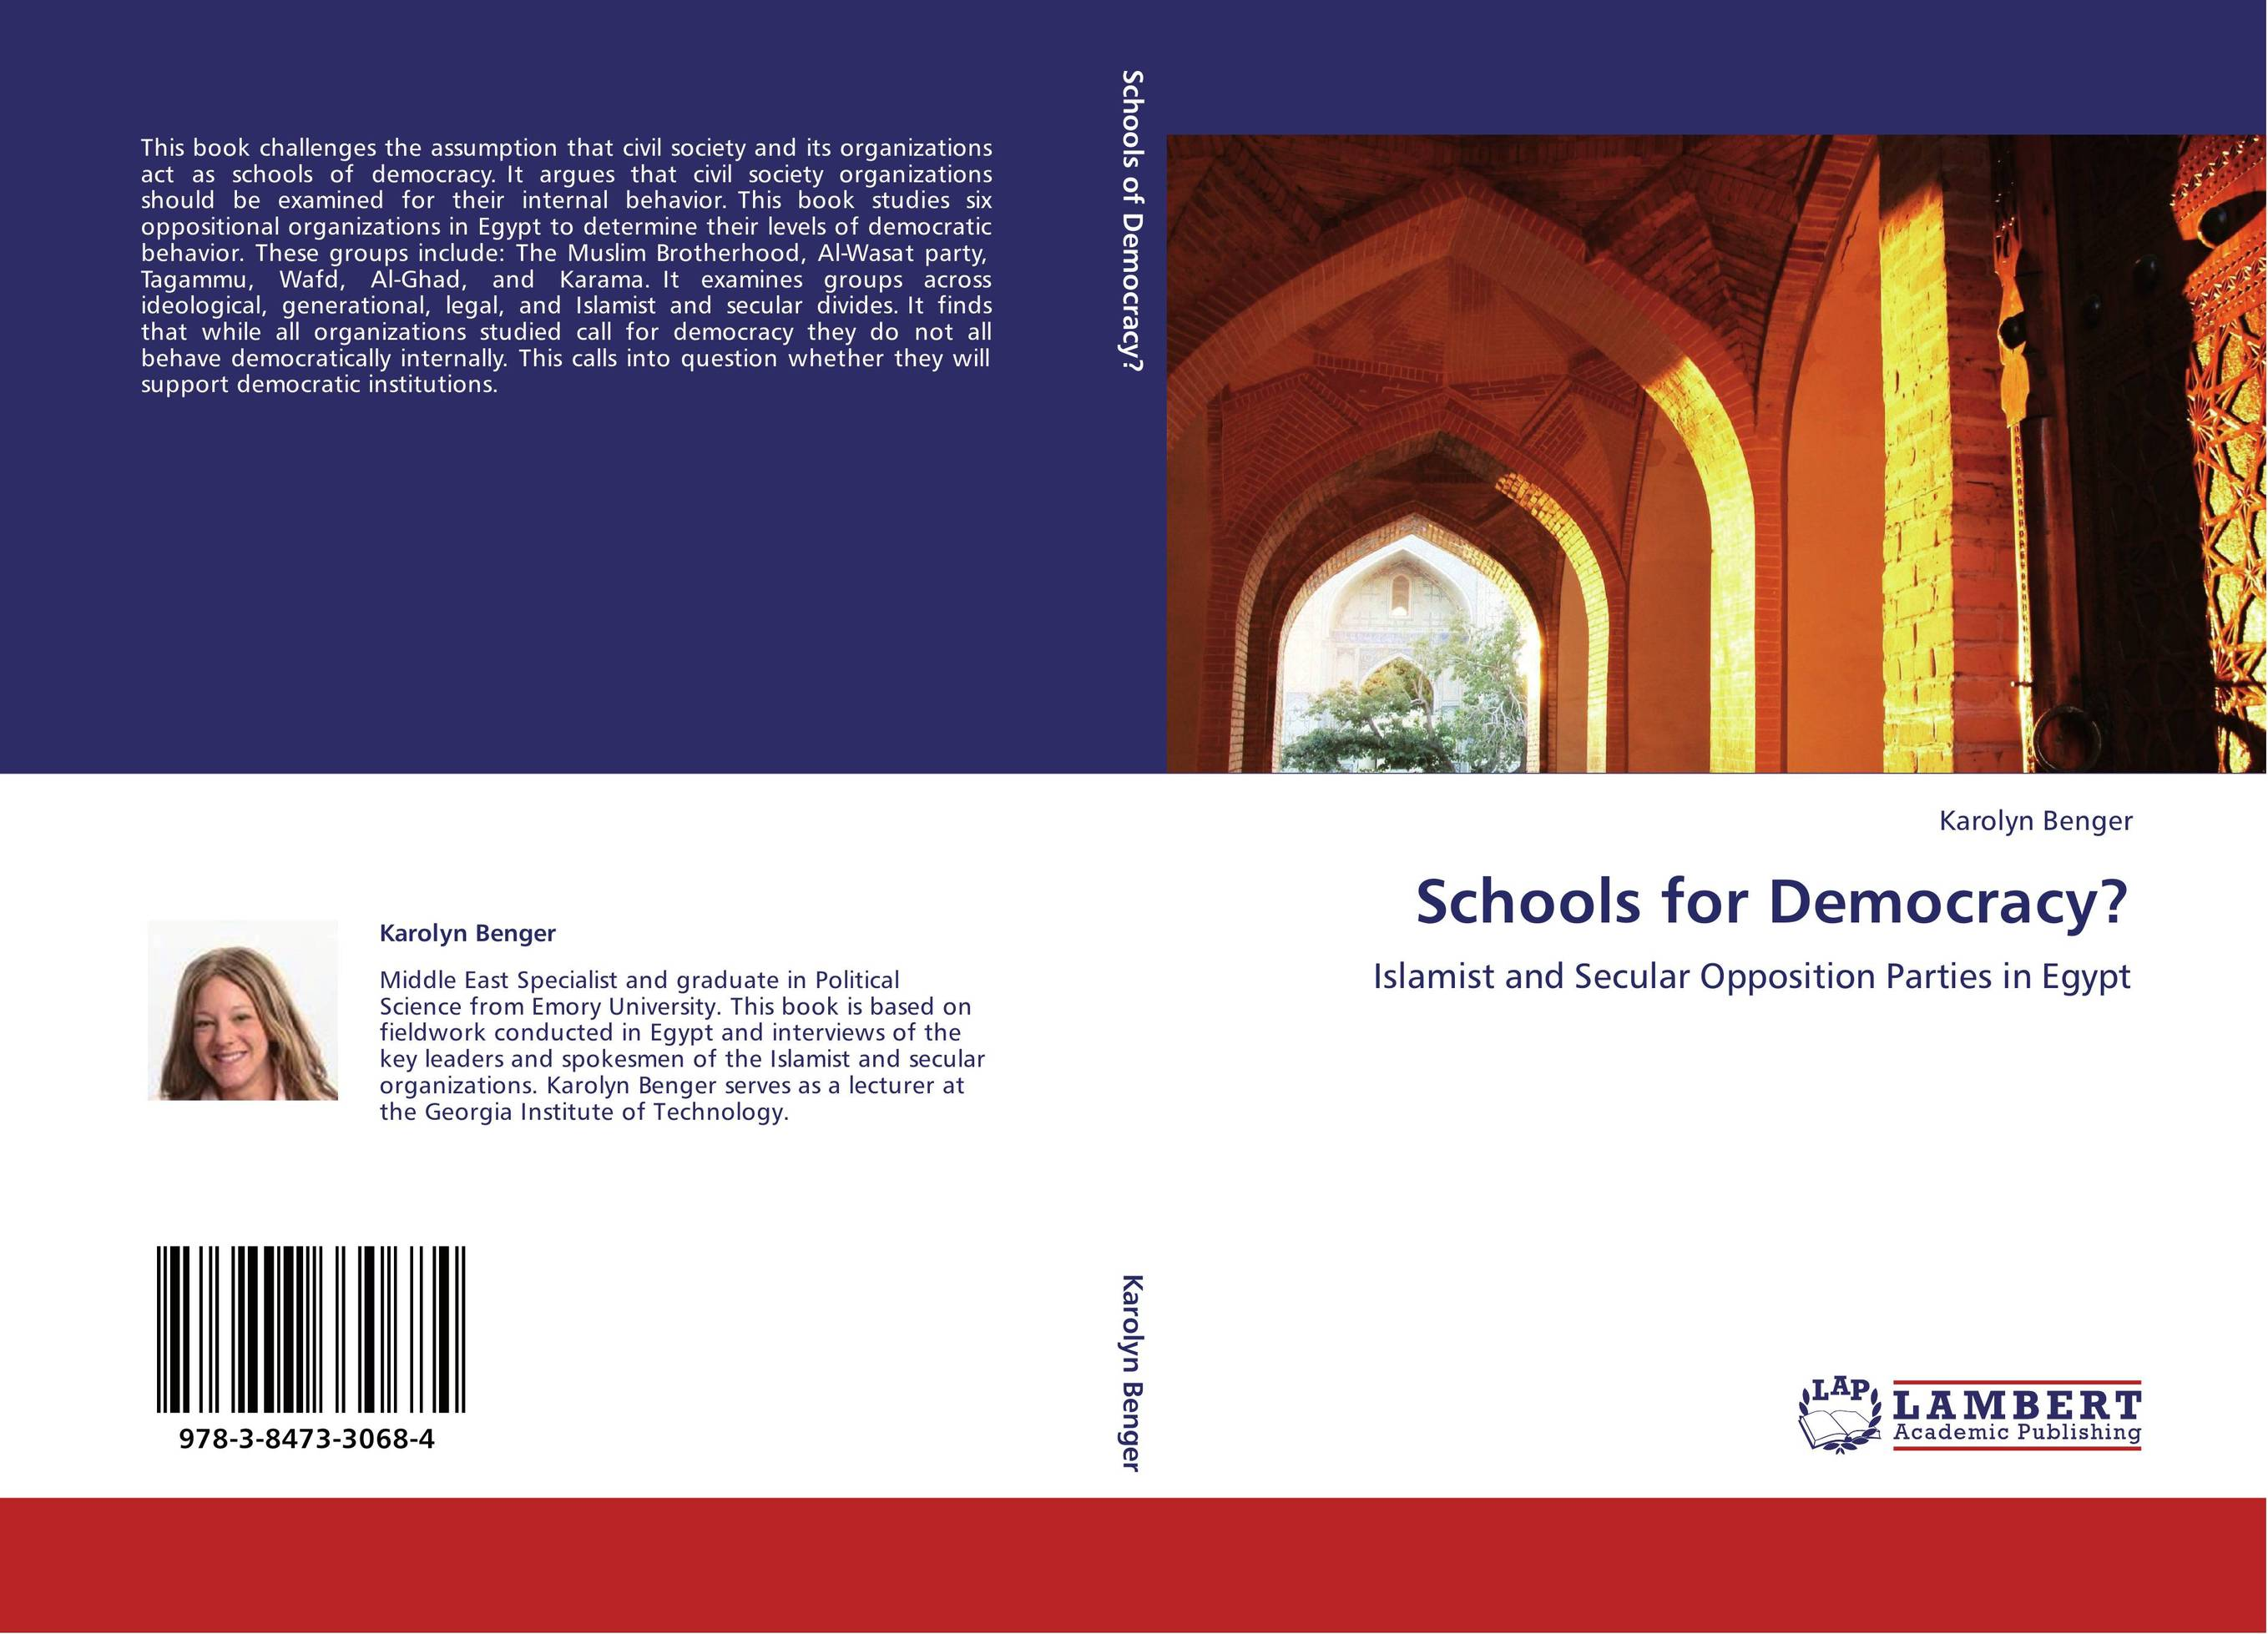 islam and the challenge of democracy essay Beyond successful democratization, consolidating democracy remains a major challenge in most - if not all - parts of the world democratic rule is inconceivable without elections still, political elections alone are no guarantee for democratic governance.